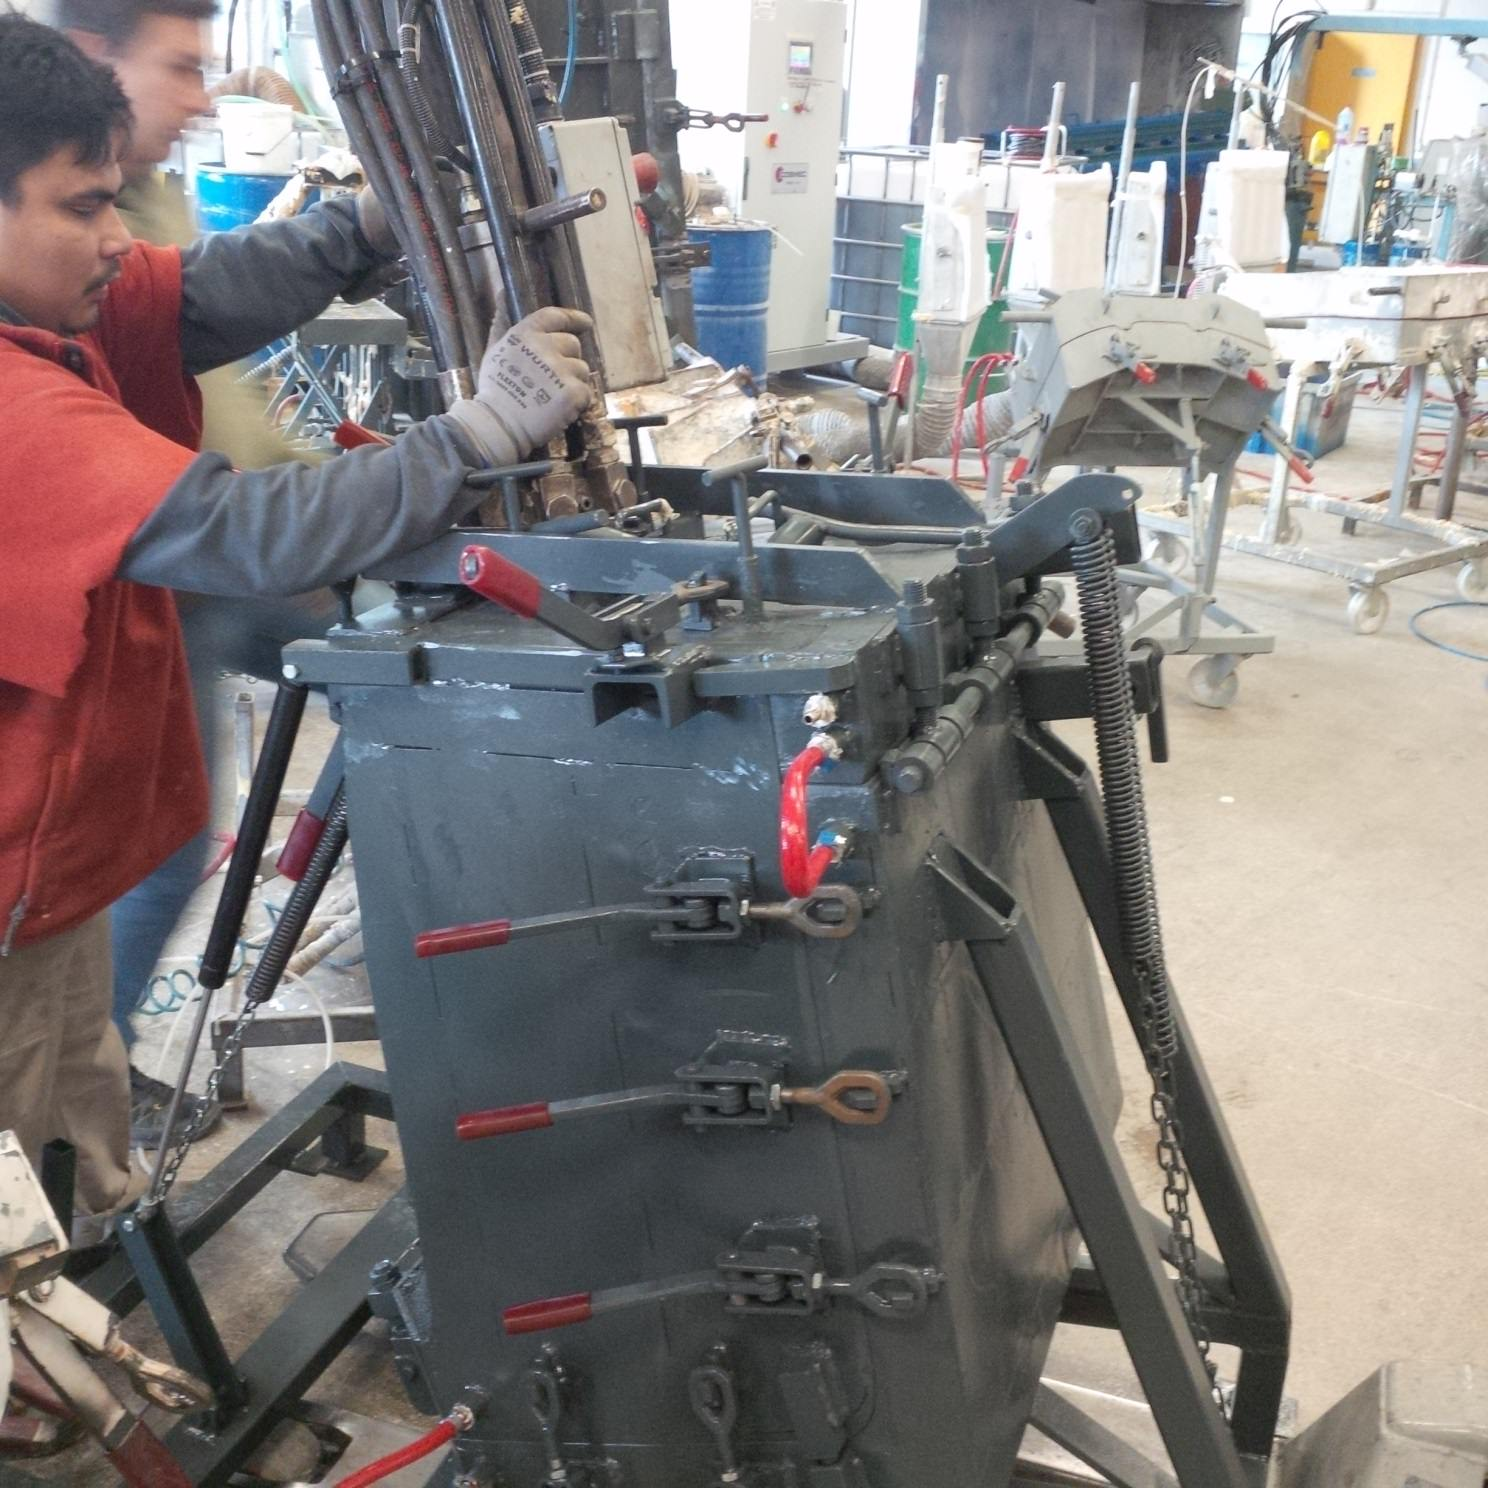 Picture of chair being created by factory worker